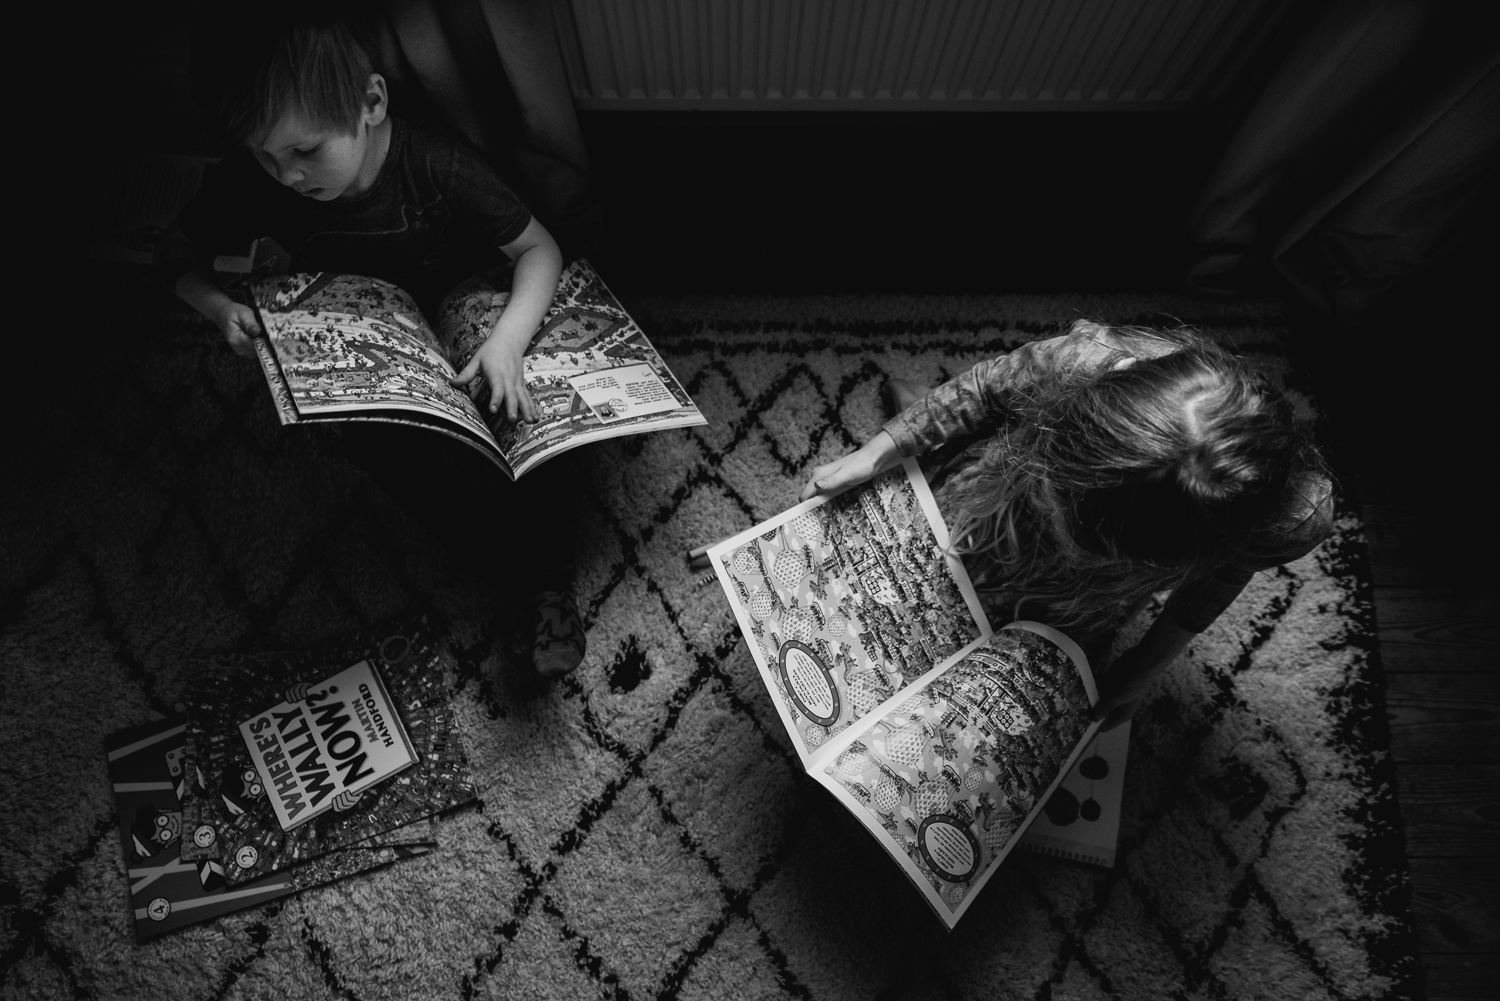 children reading books on the carpet black and white photograph